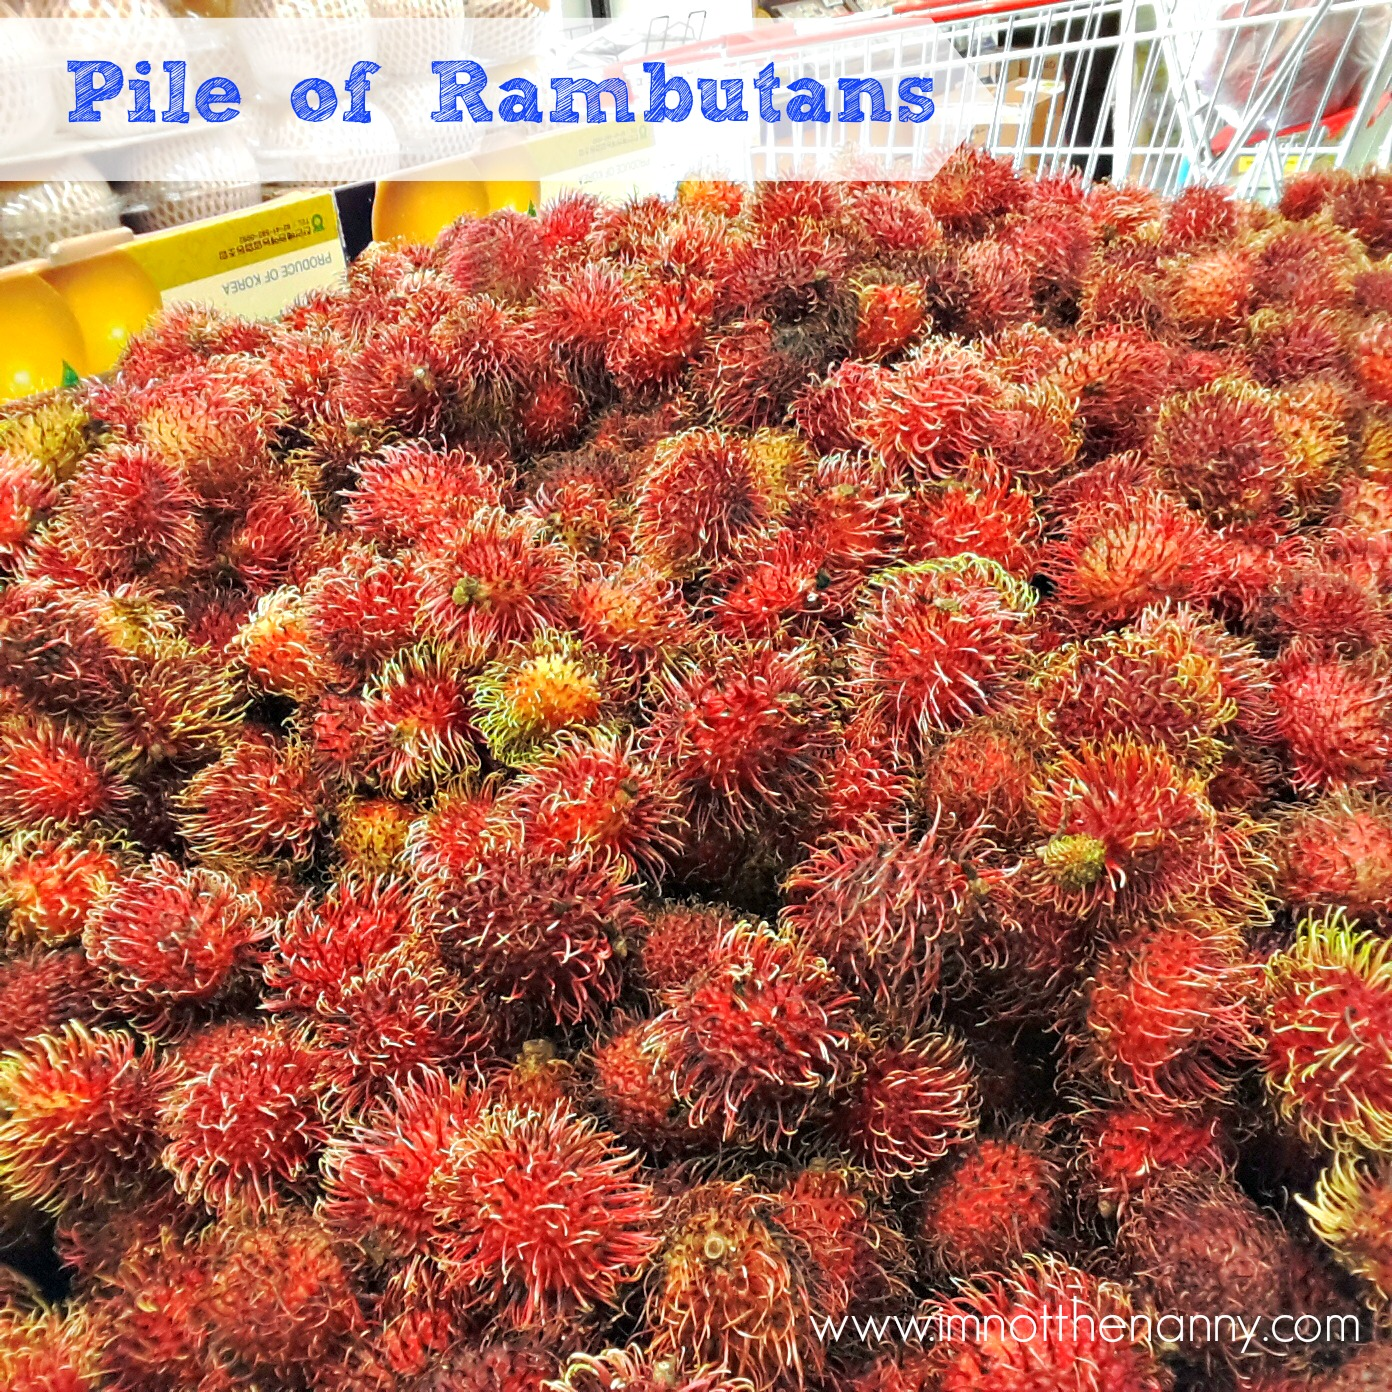 Rambutans at Hmart